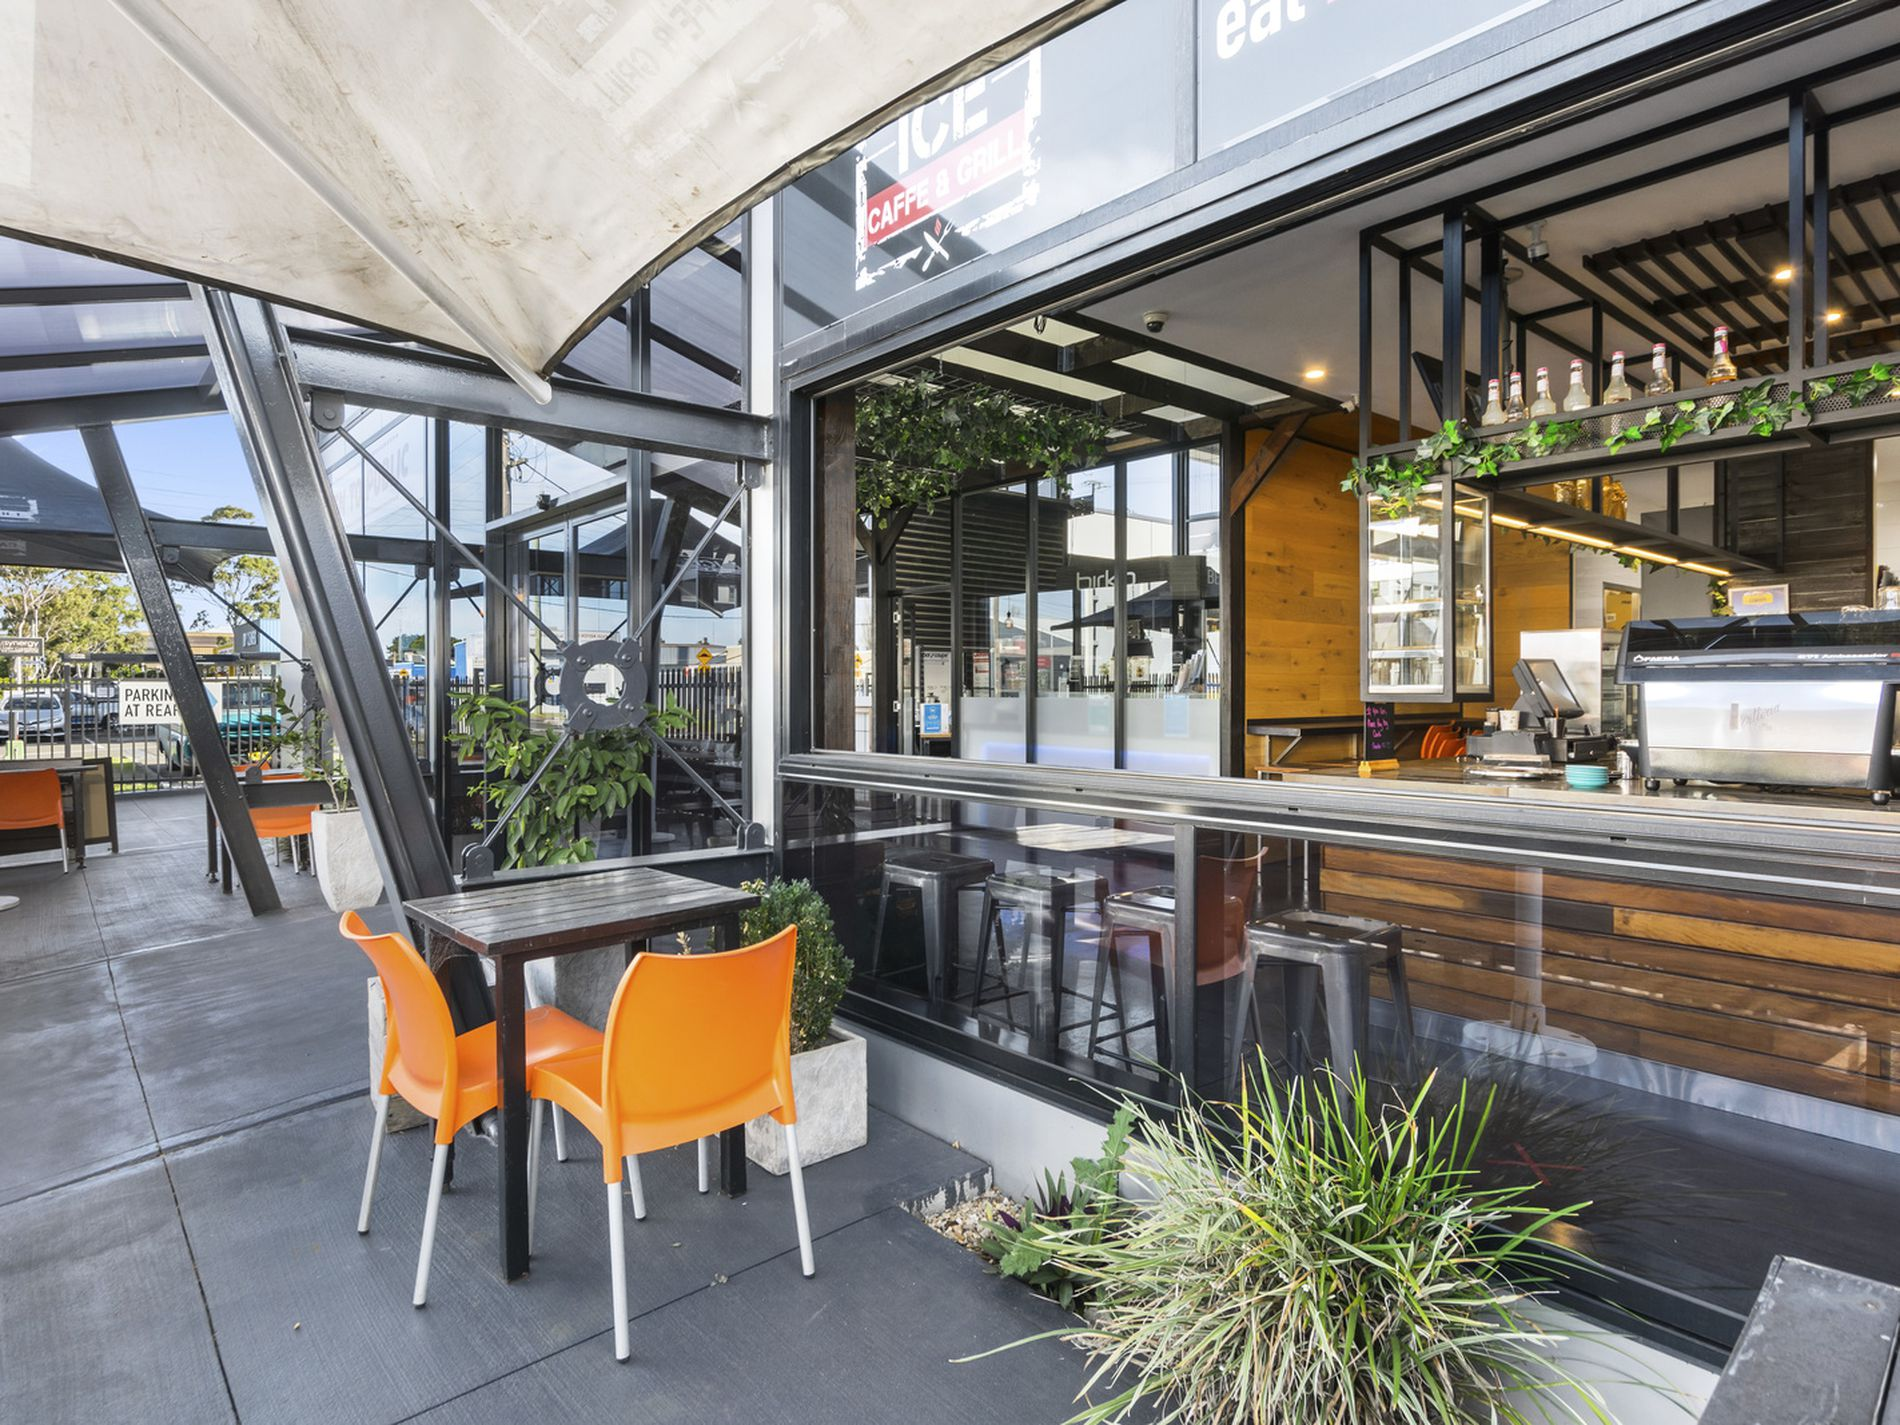 Ice Caffe and Grill Wollongong